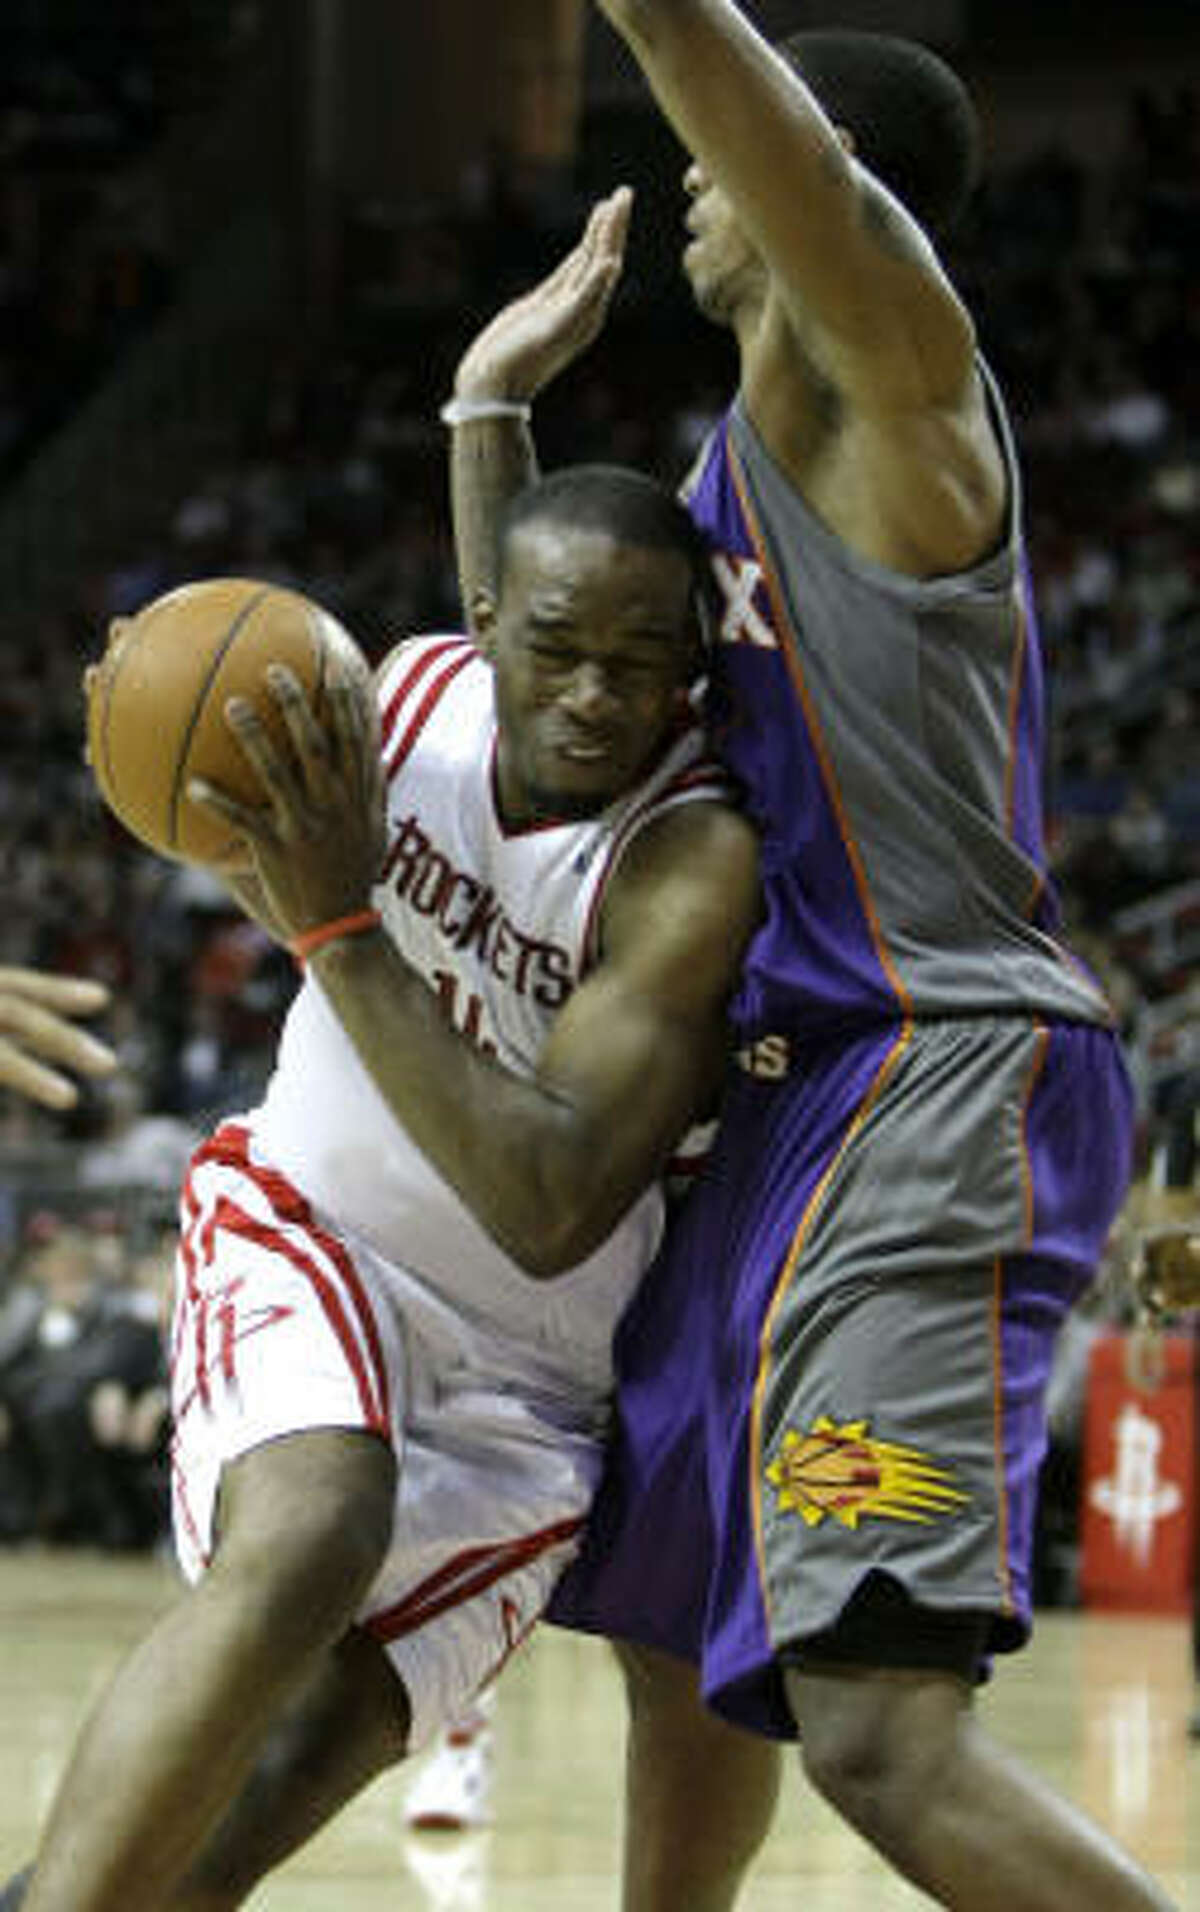 Rockets forward Carl Landry, left, scored a game-high 27 points off the bench in Tuesday's game against the Phoenix Suns, but Houston came up short in an 111-105 loss at Toyota Center.